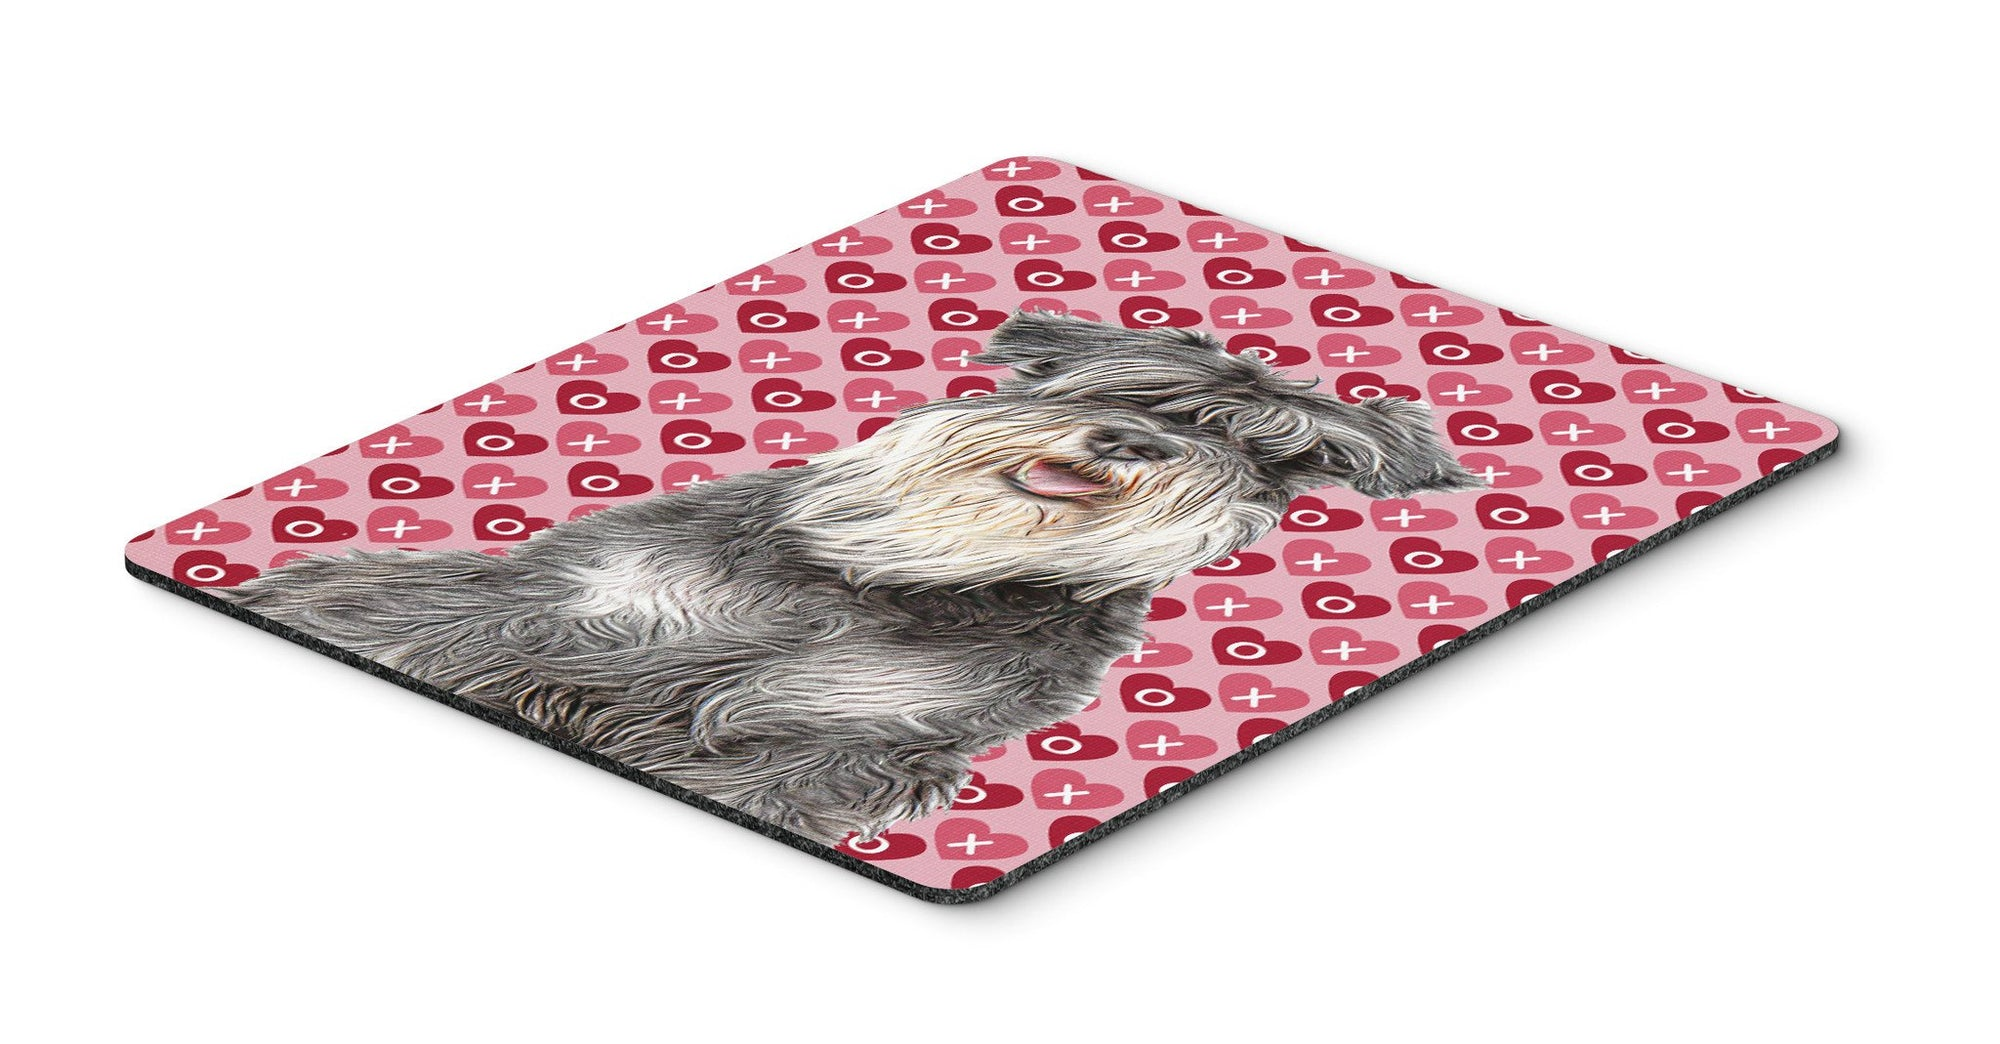 Hearts Love and Valentine's Day Schnauzer Mouse Pad, Hot Pad or Trivet KJ1192MP by Caroline's Treasures